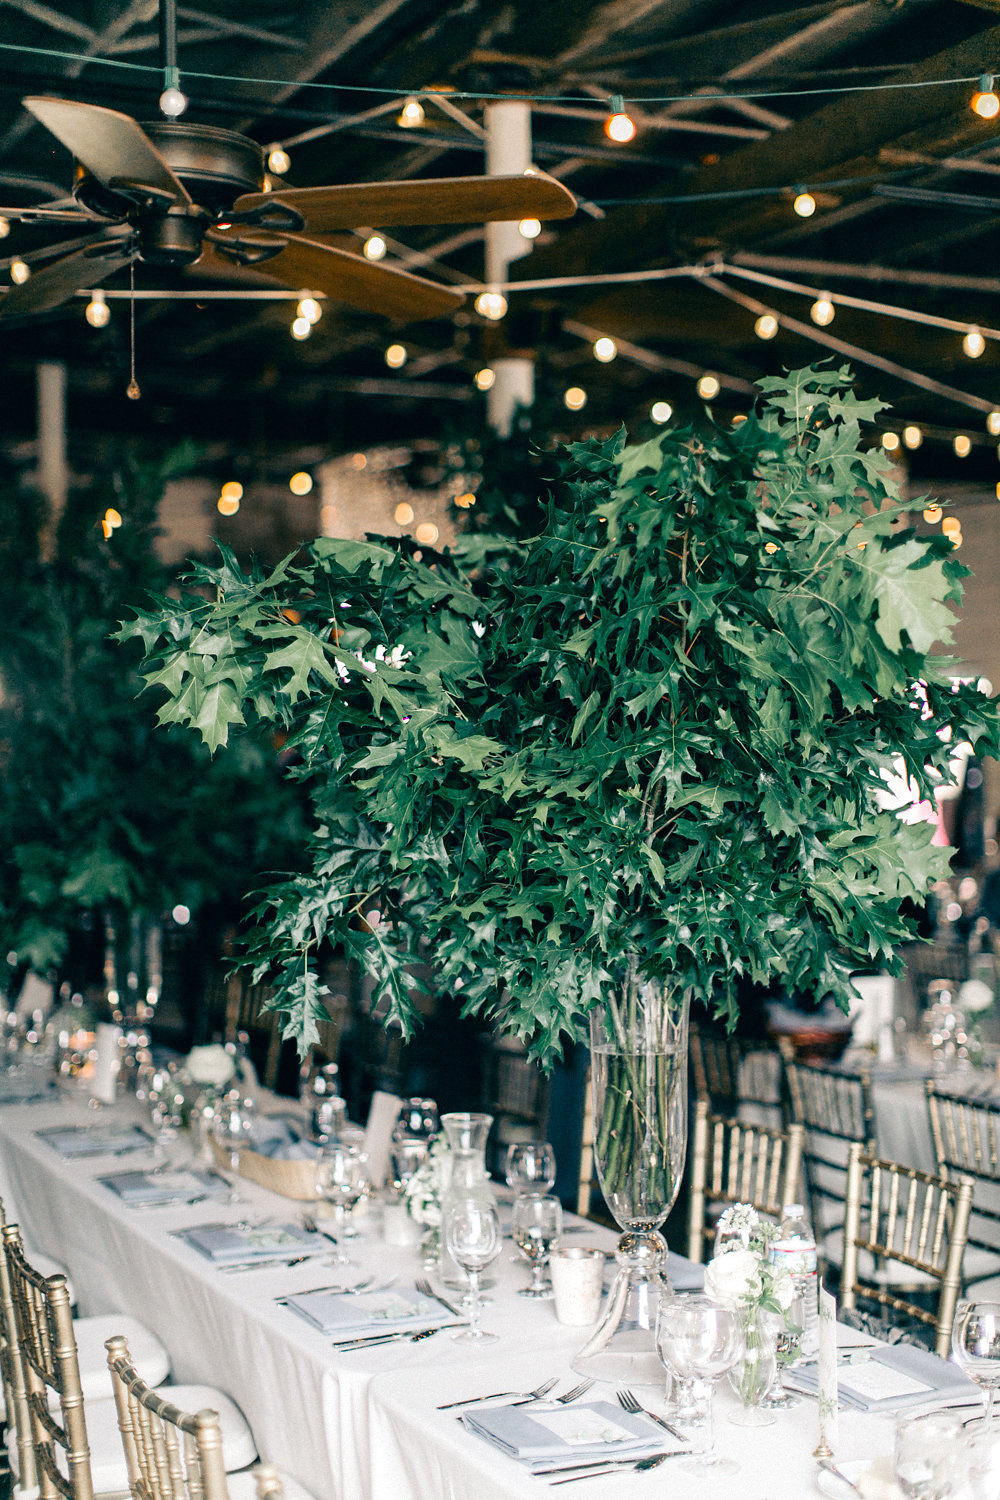 Affordable Wedding Centerpieces That Still Look Elevated